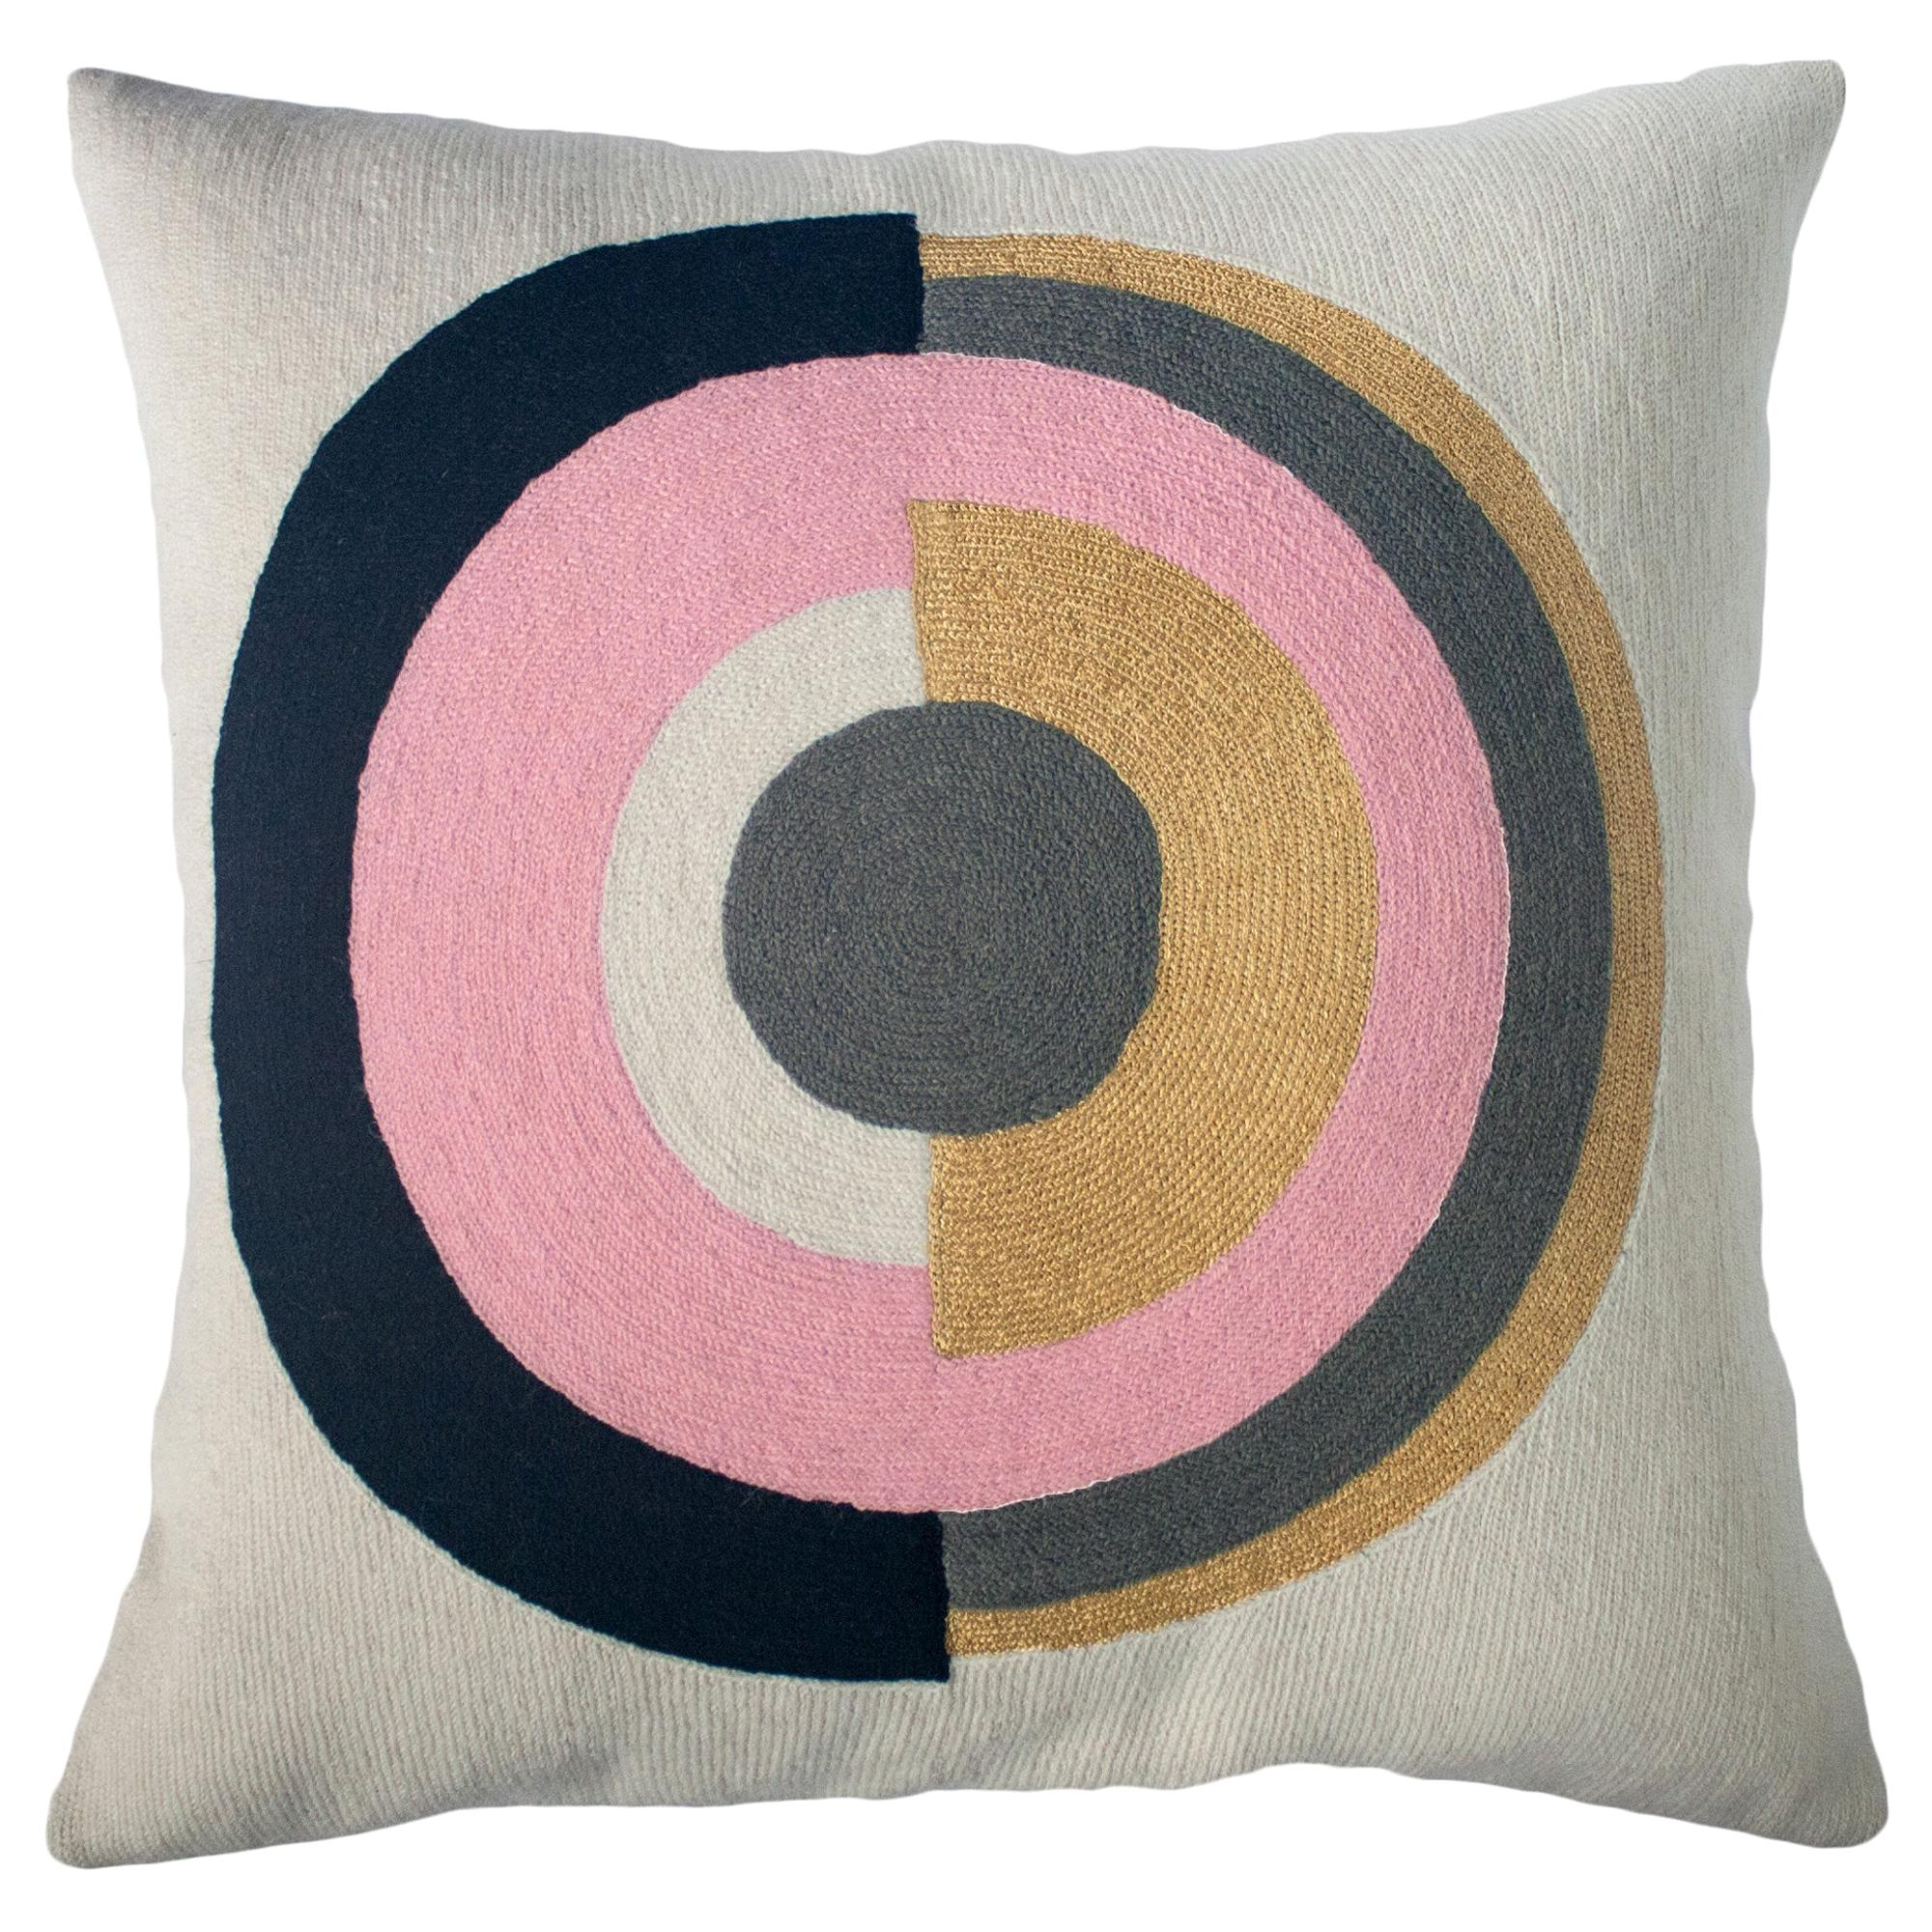 Wool Pillows and Throws 1,709 For